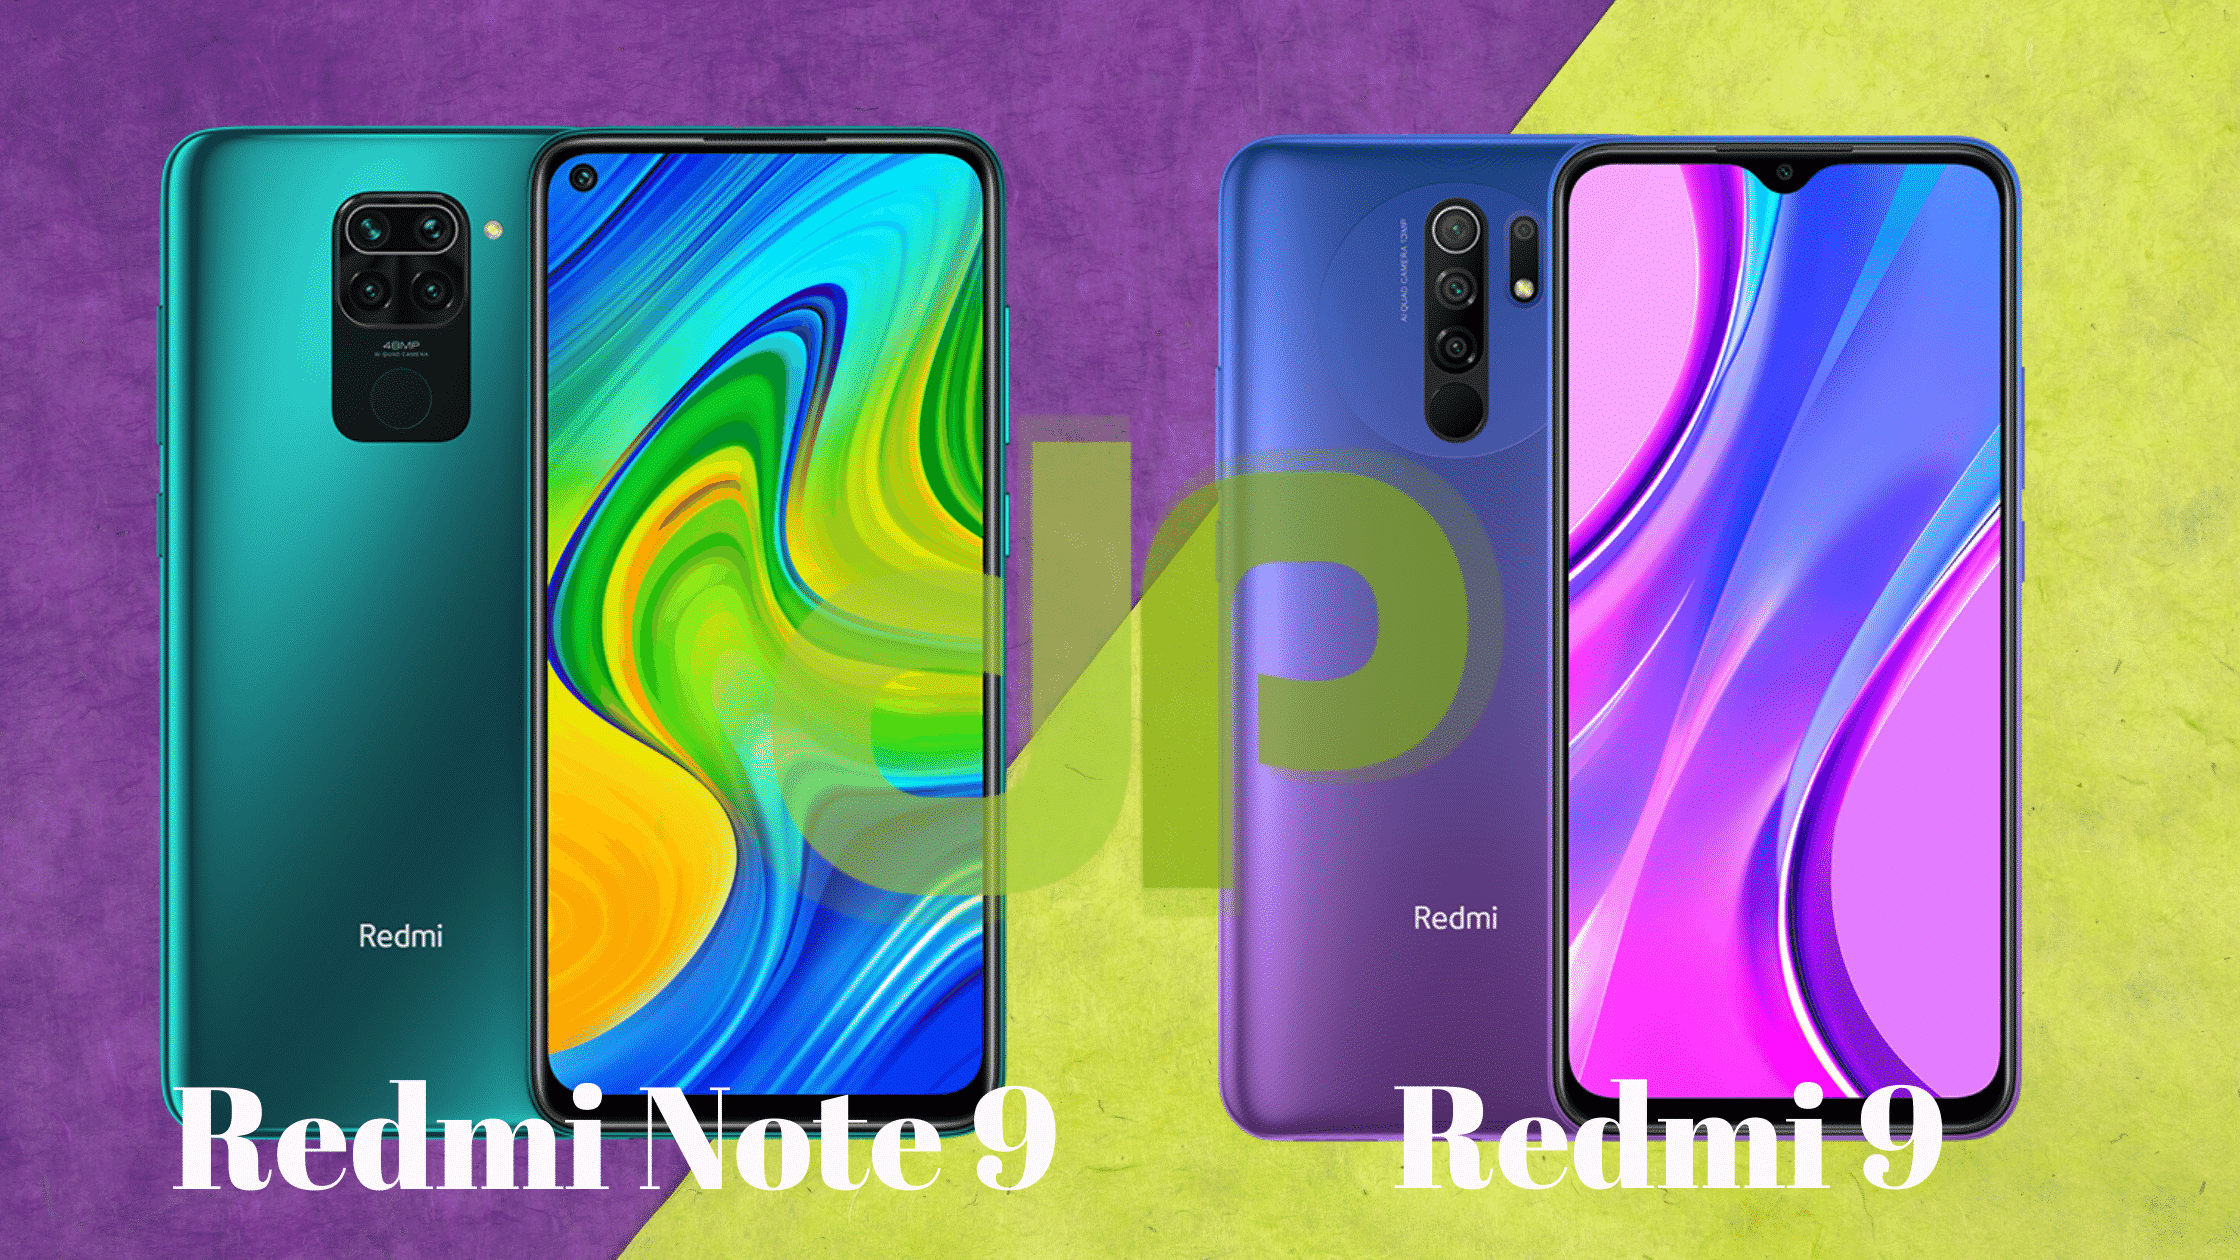 Redmi Note 9 vs Redmi 9